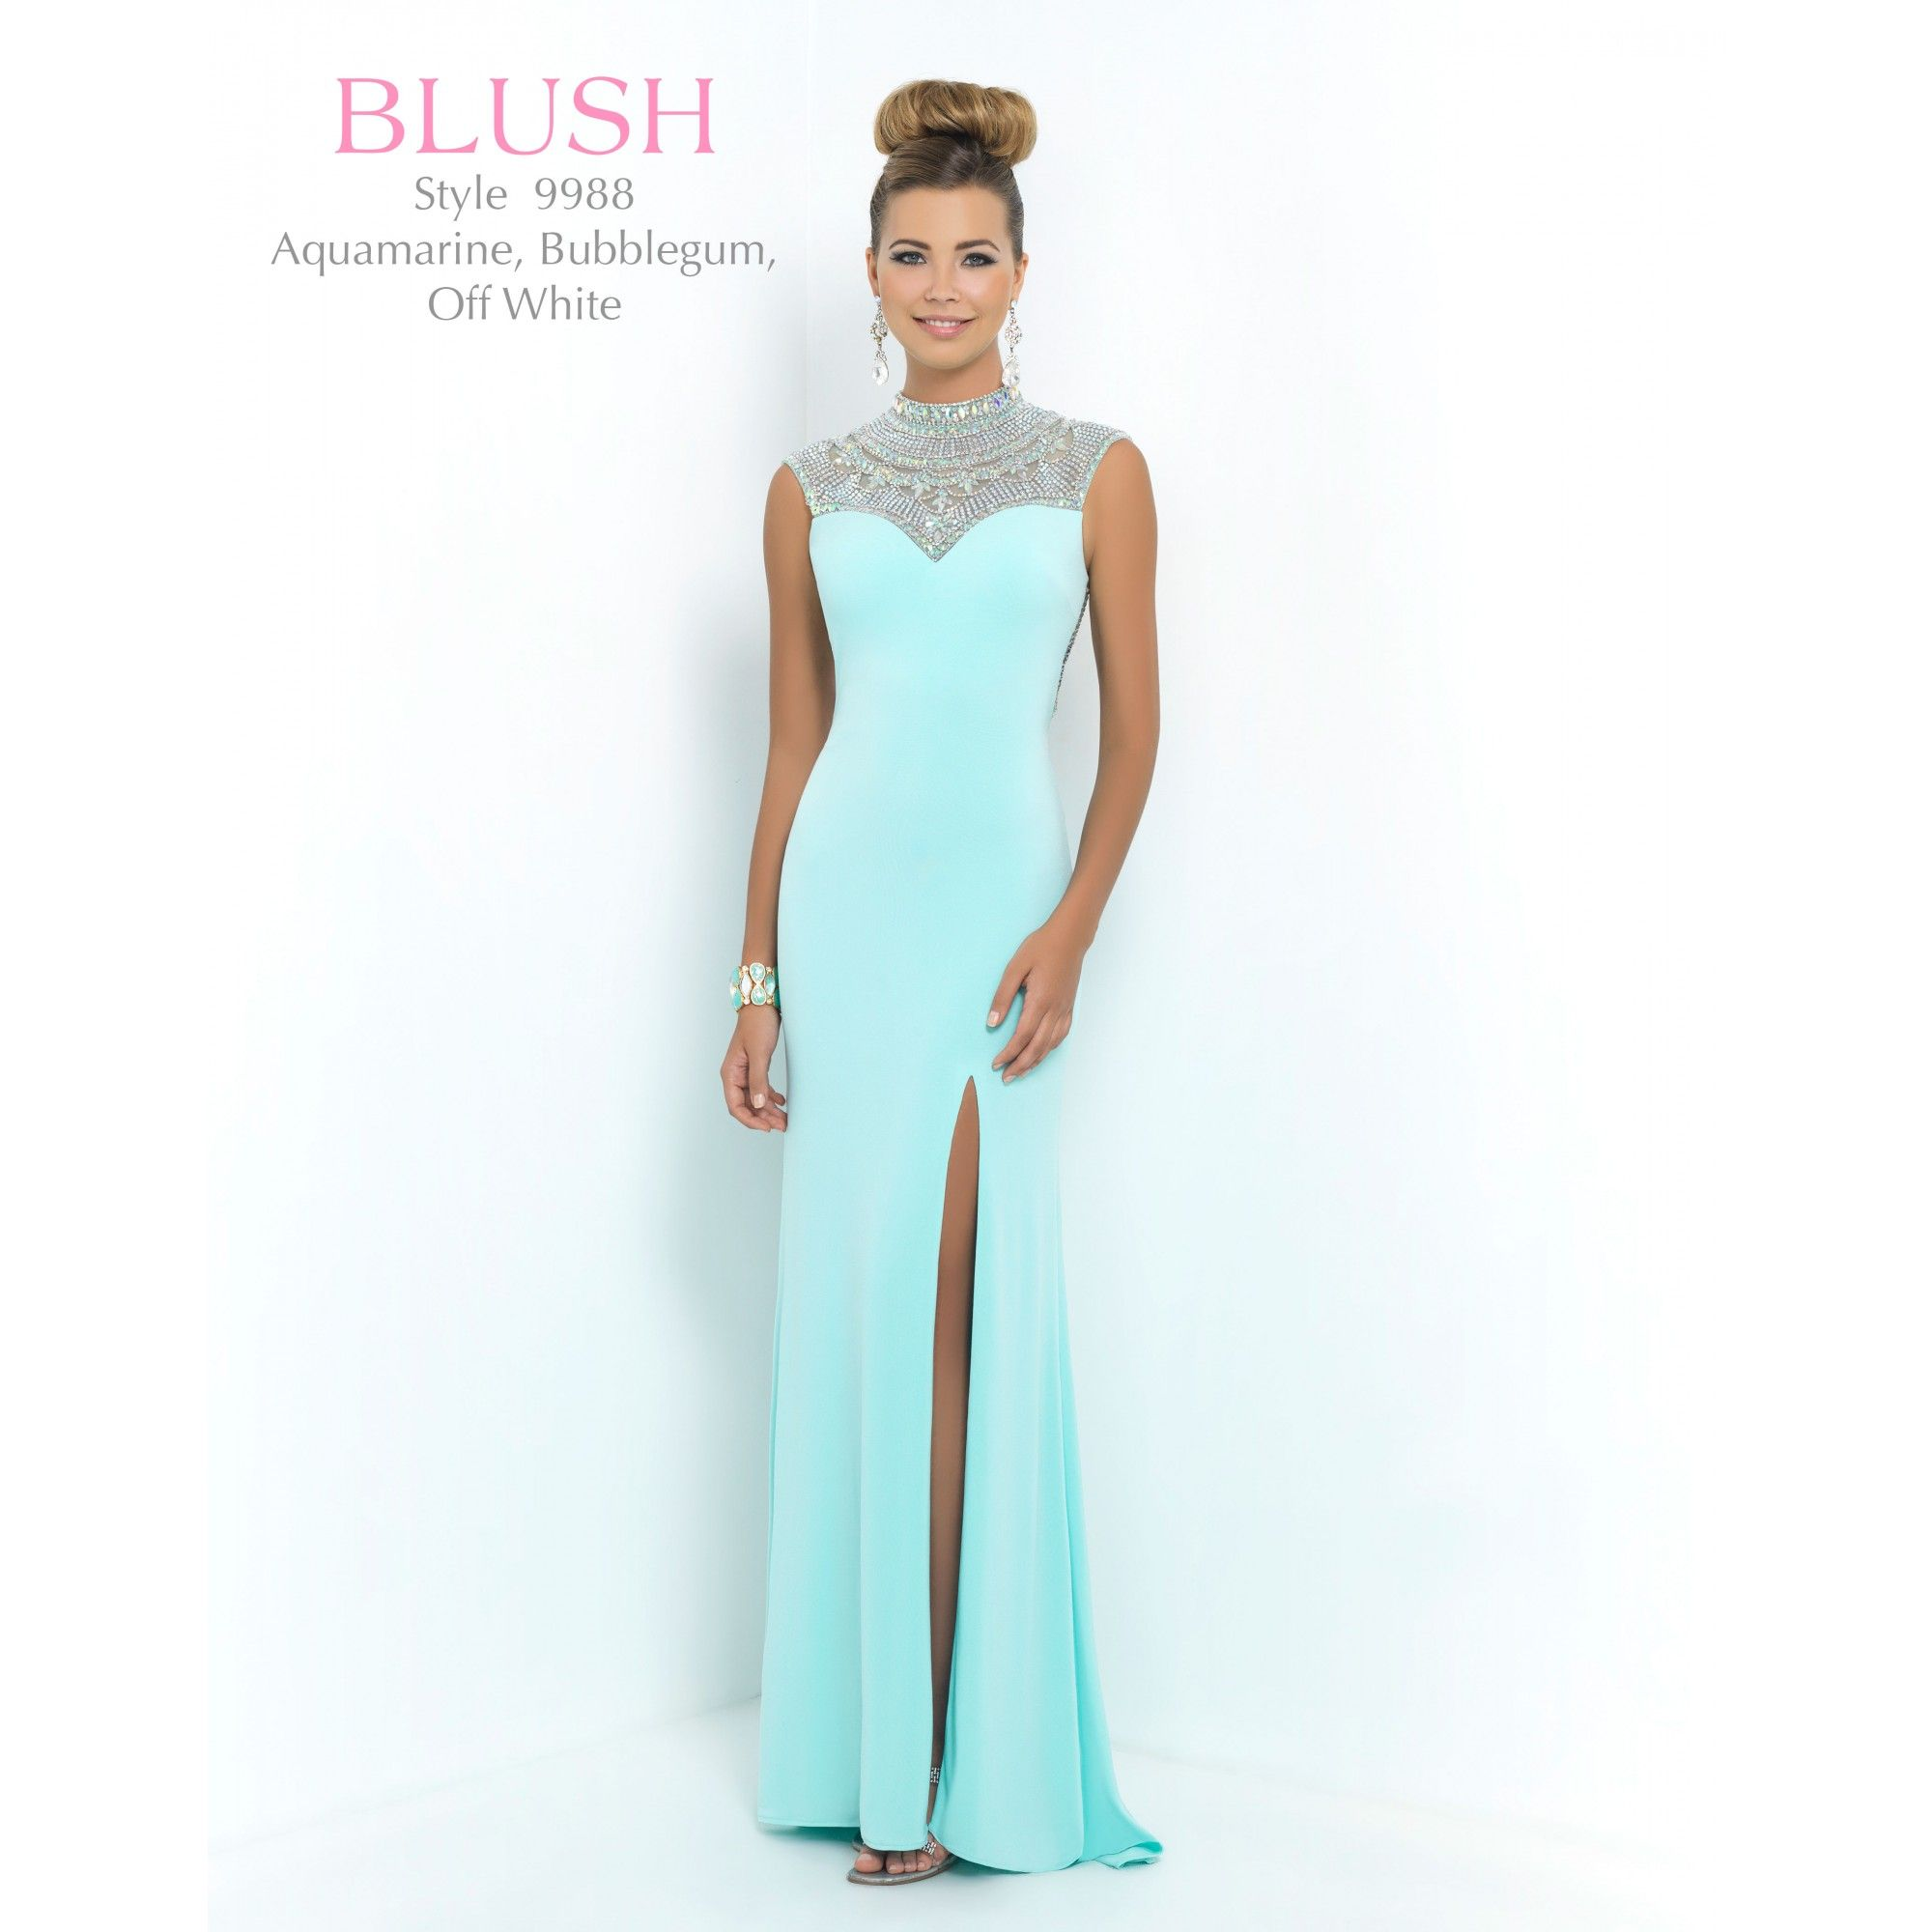 Blush blush prom dress tampabridalshops formal